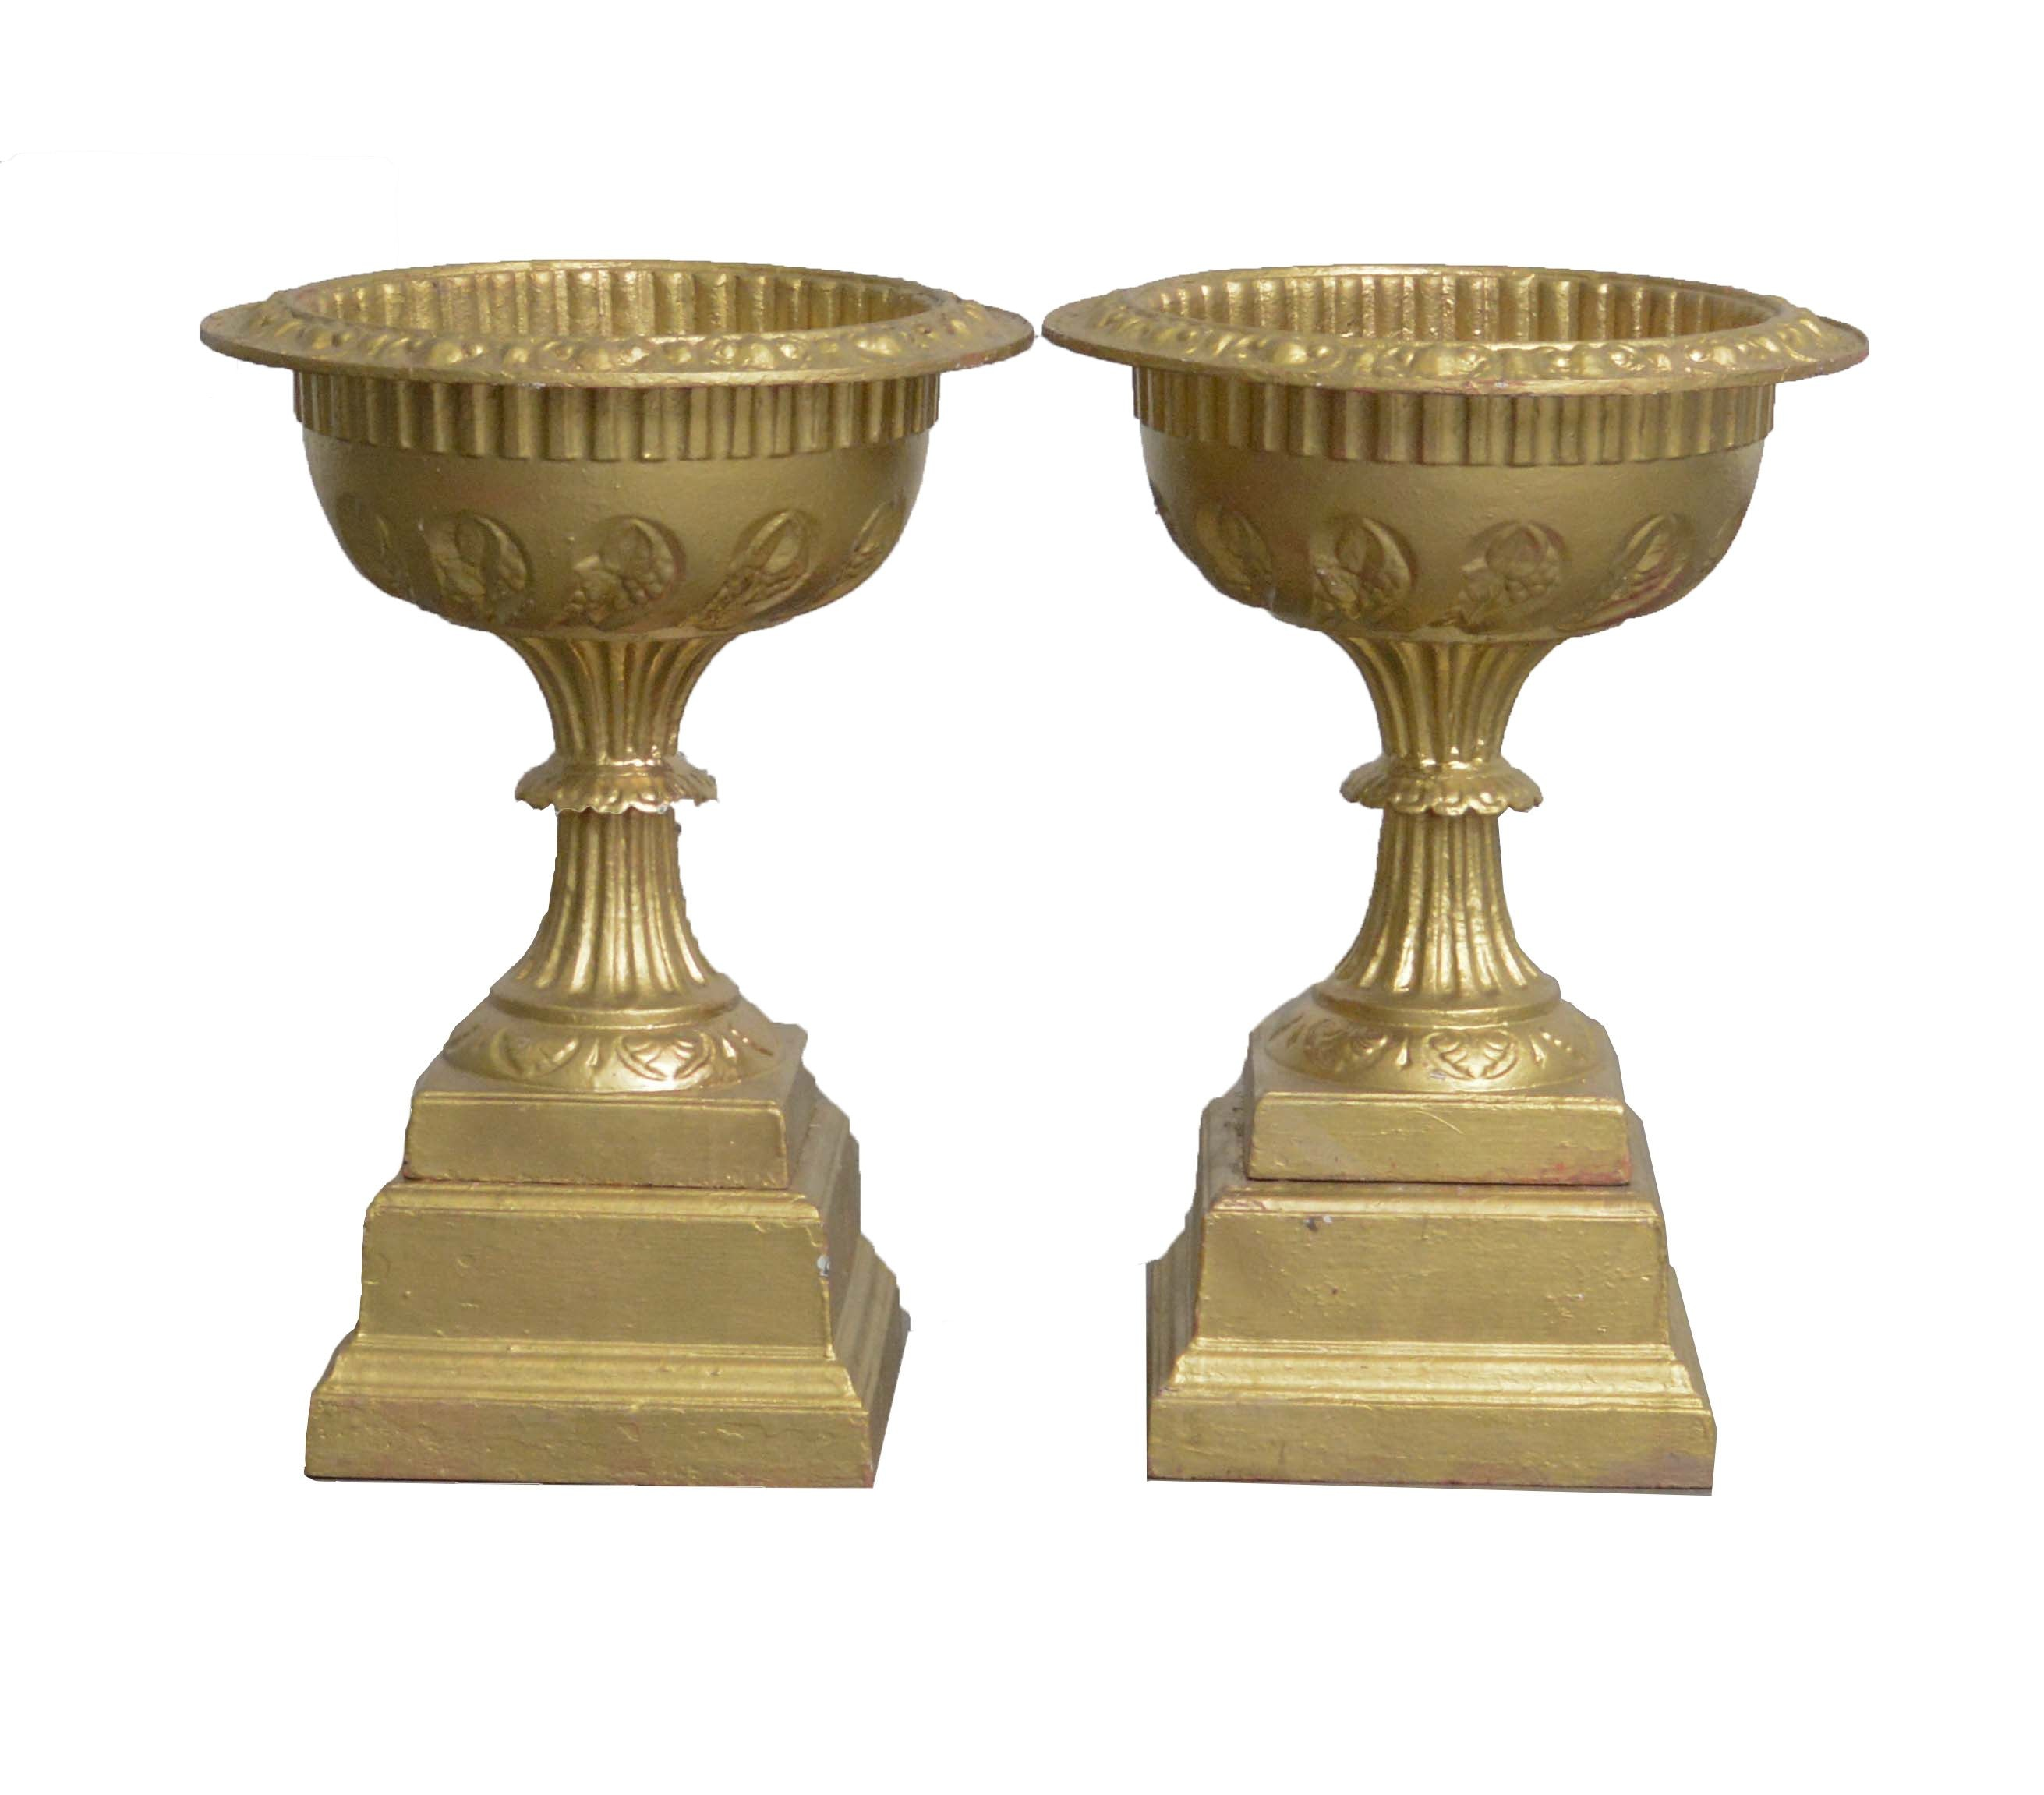 Neoclassical Style Urn Shaped Painted Iron Planters on Beveled Stands